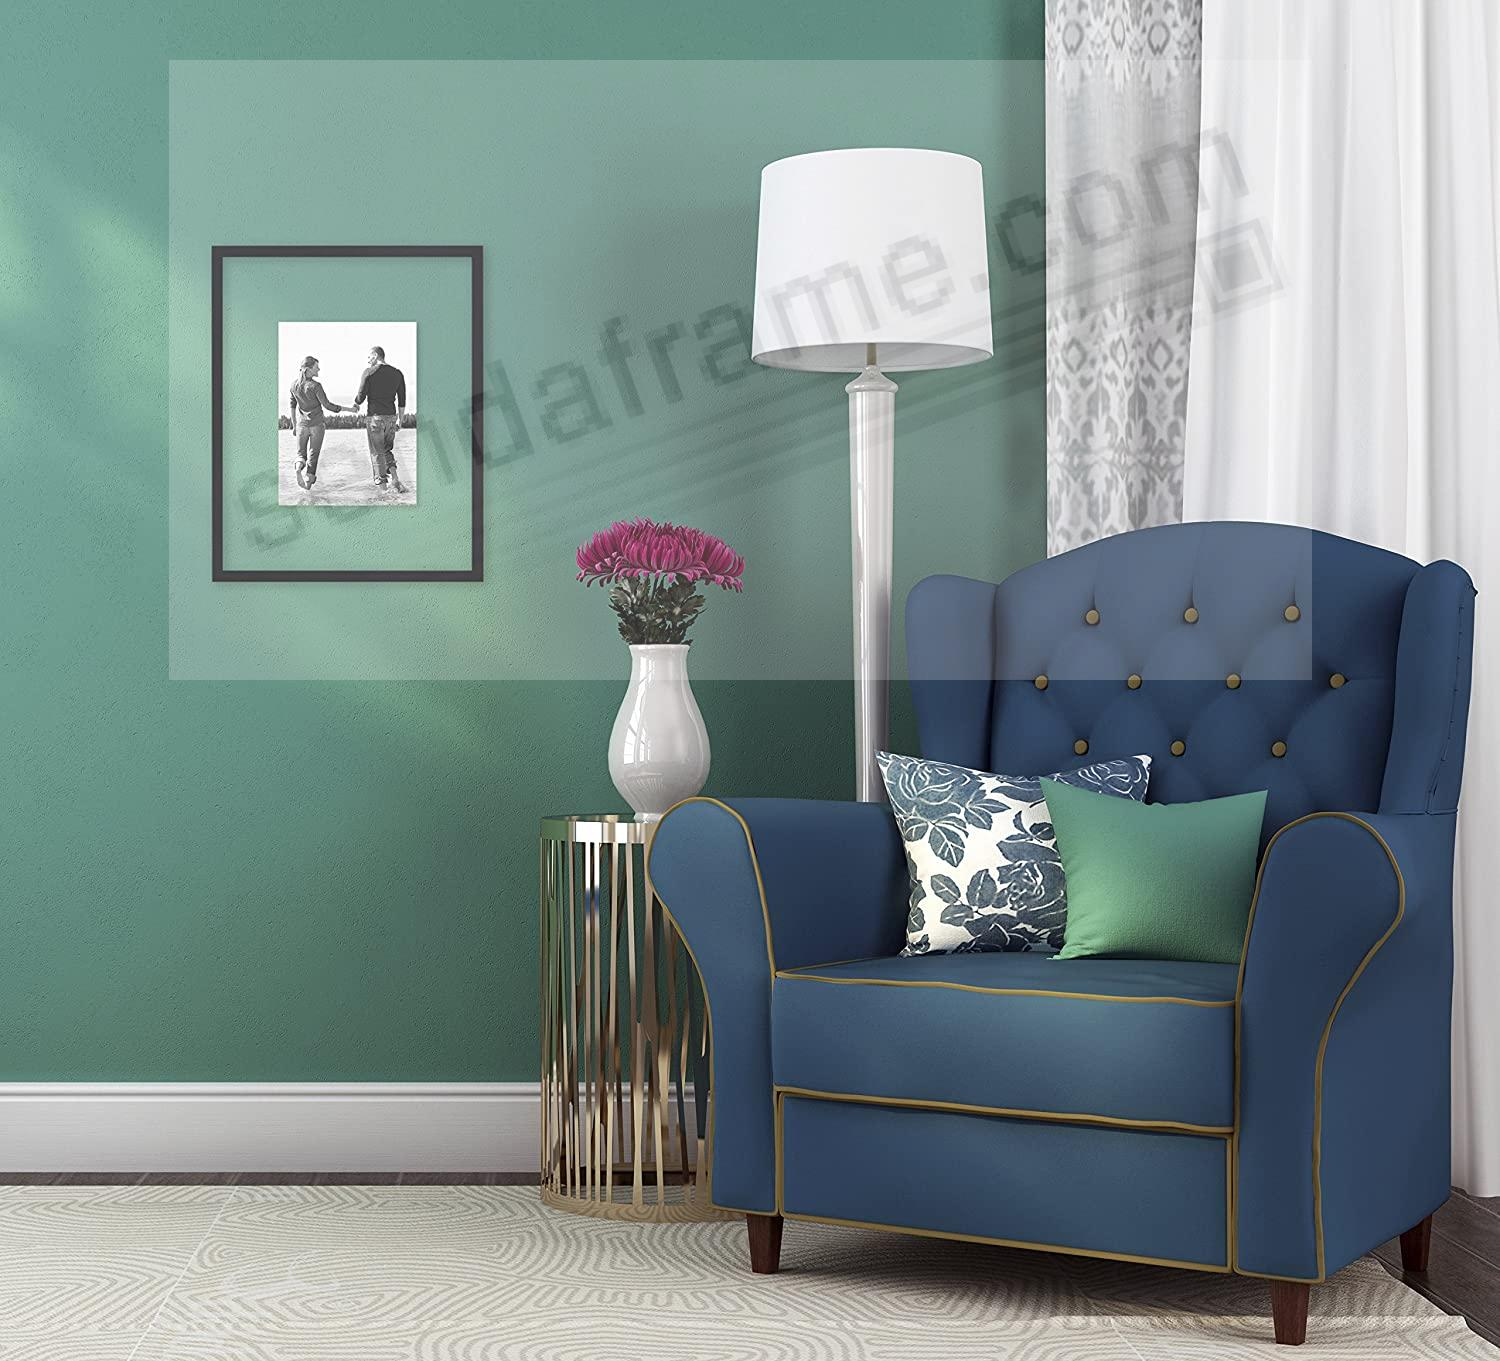 the original float and double sided 16x20 black stain wood wall frame